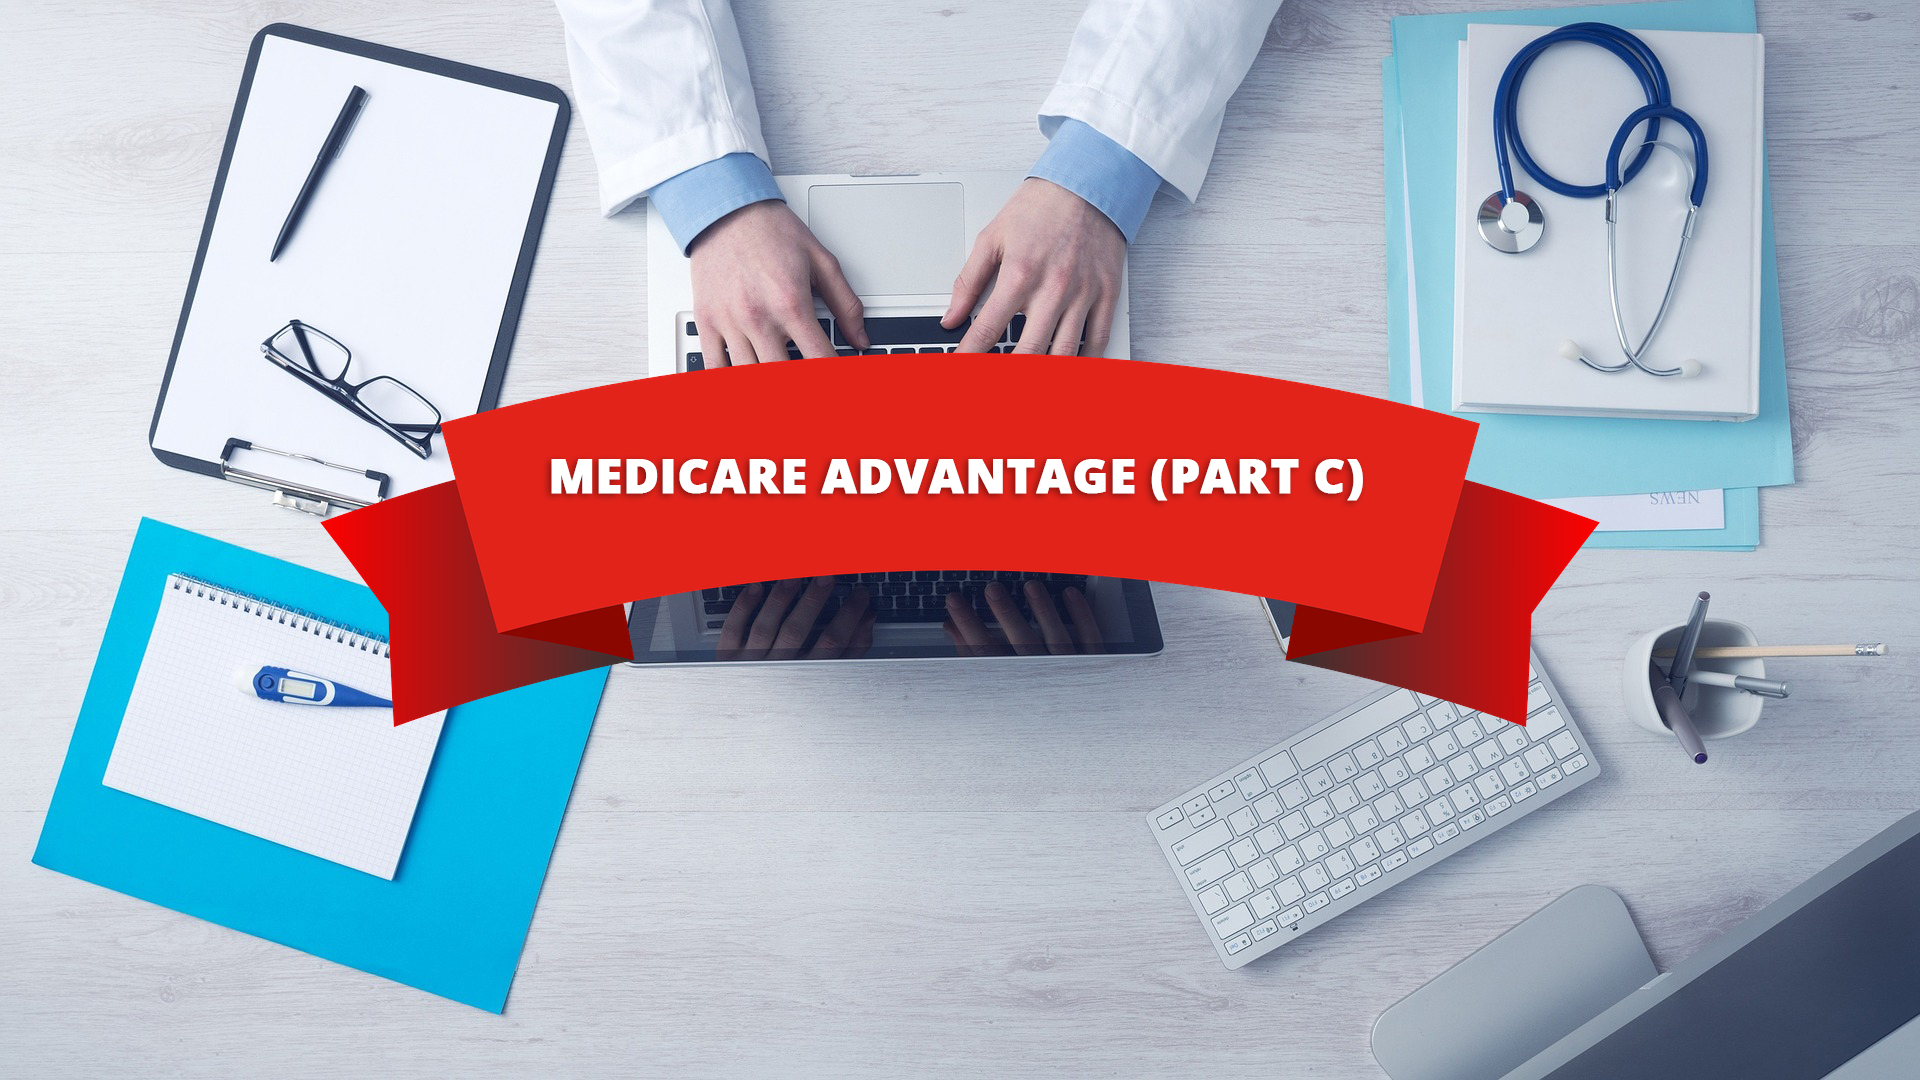 what is medicare advantage plan part c?